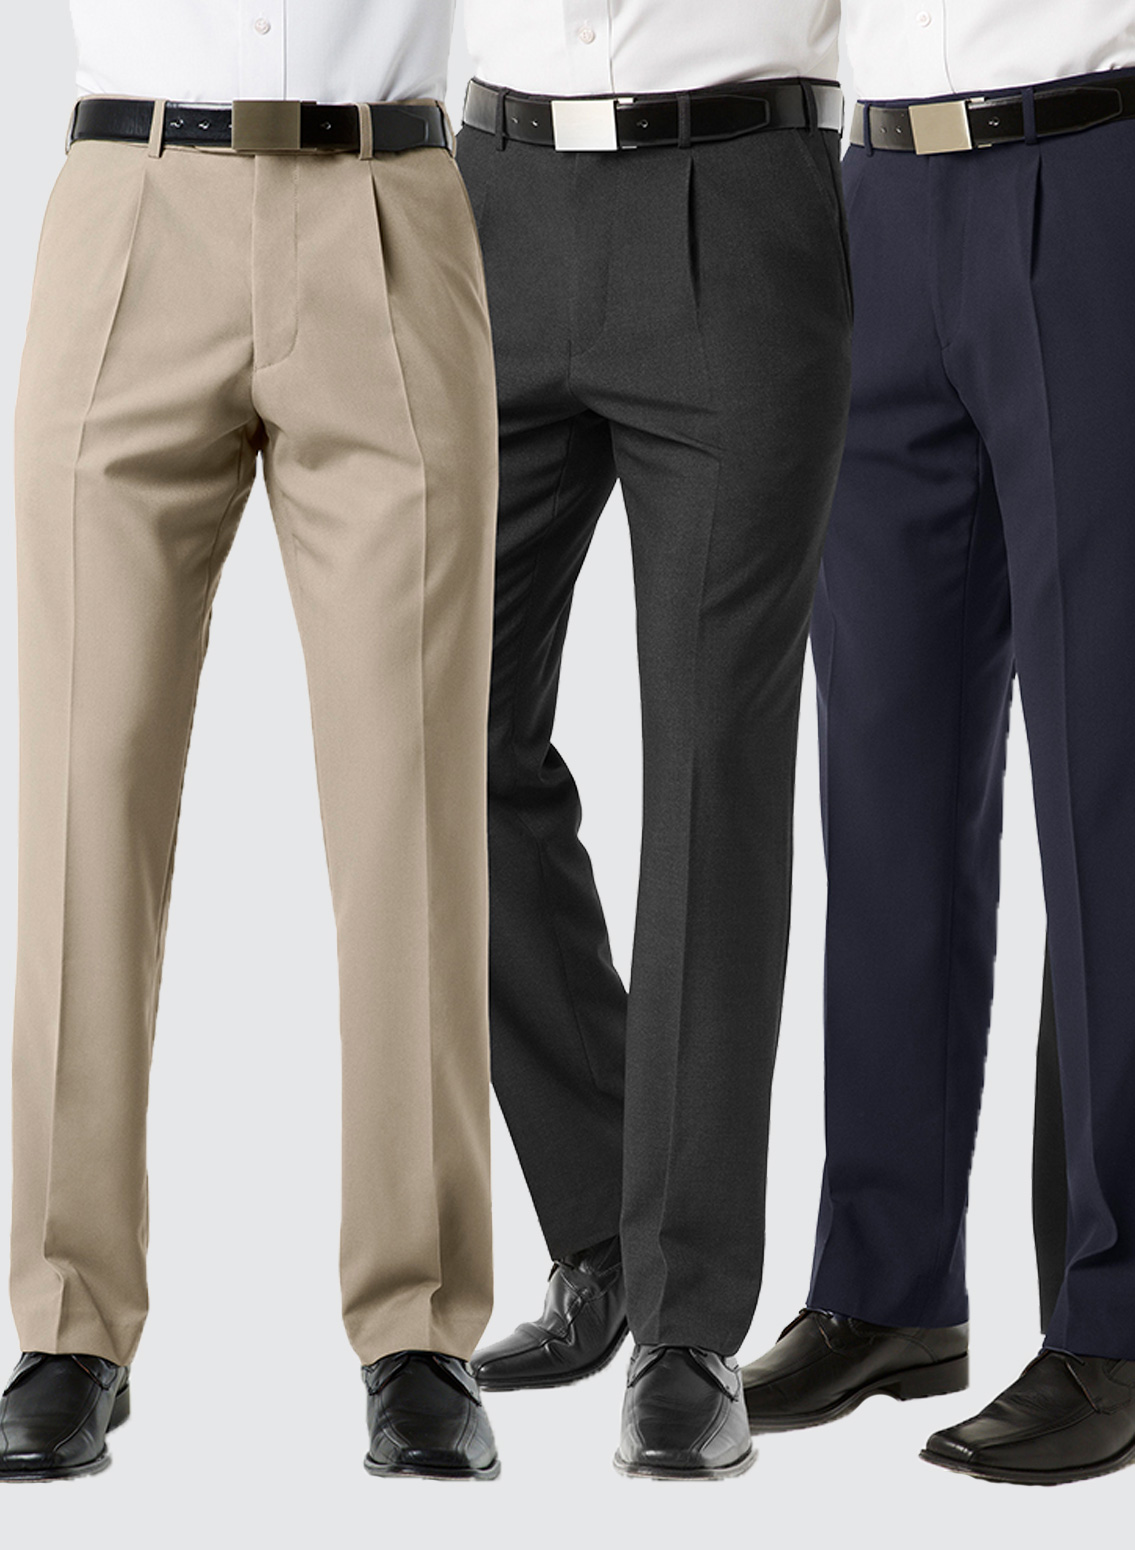 bs29110 mens classic pleat front pant business image group